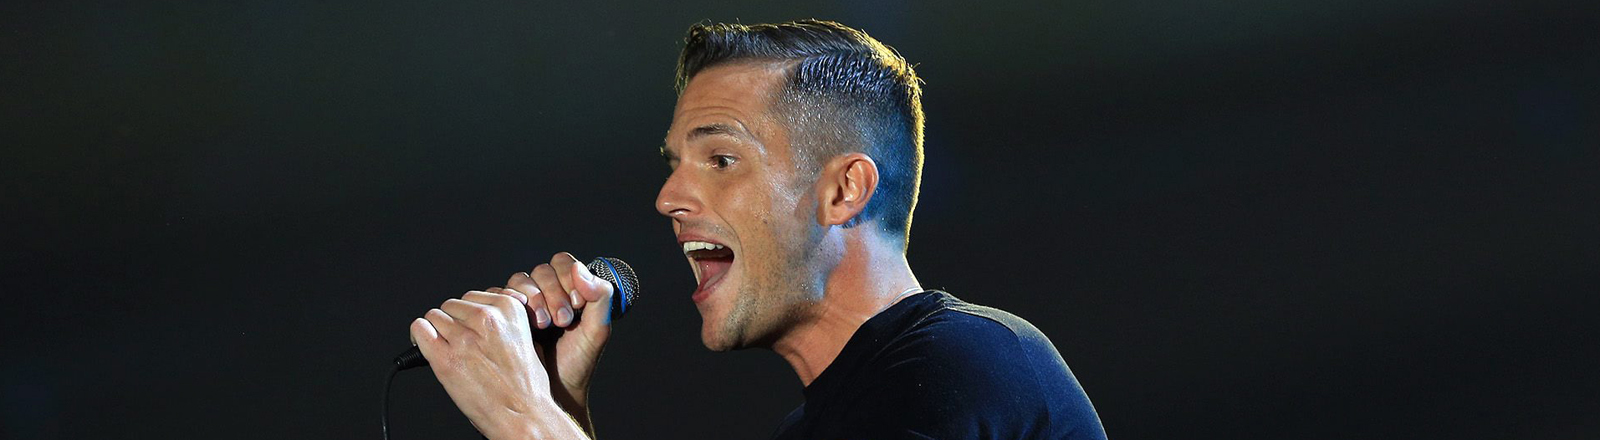 Brandon Flowers von der Band The Killers bei den MTV Europe Music Awards in Amsterdam am 12. November 2013.